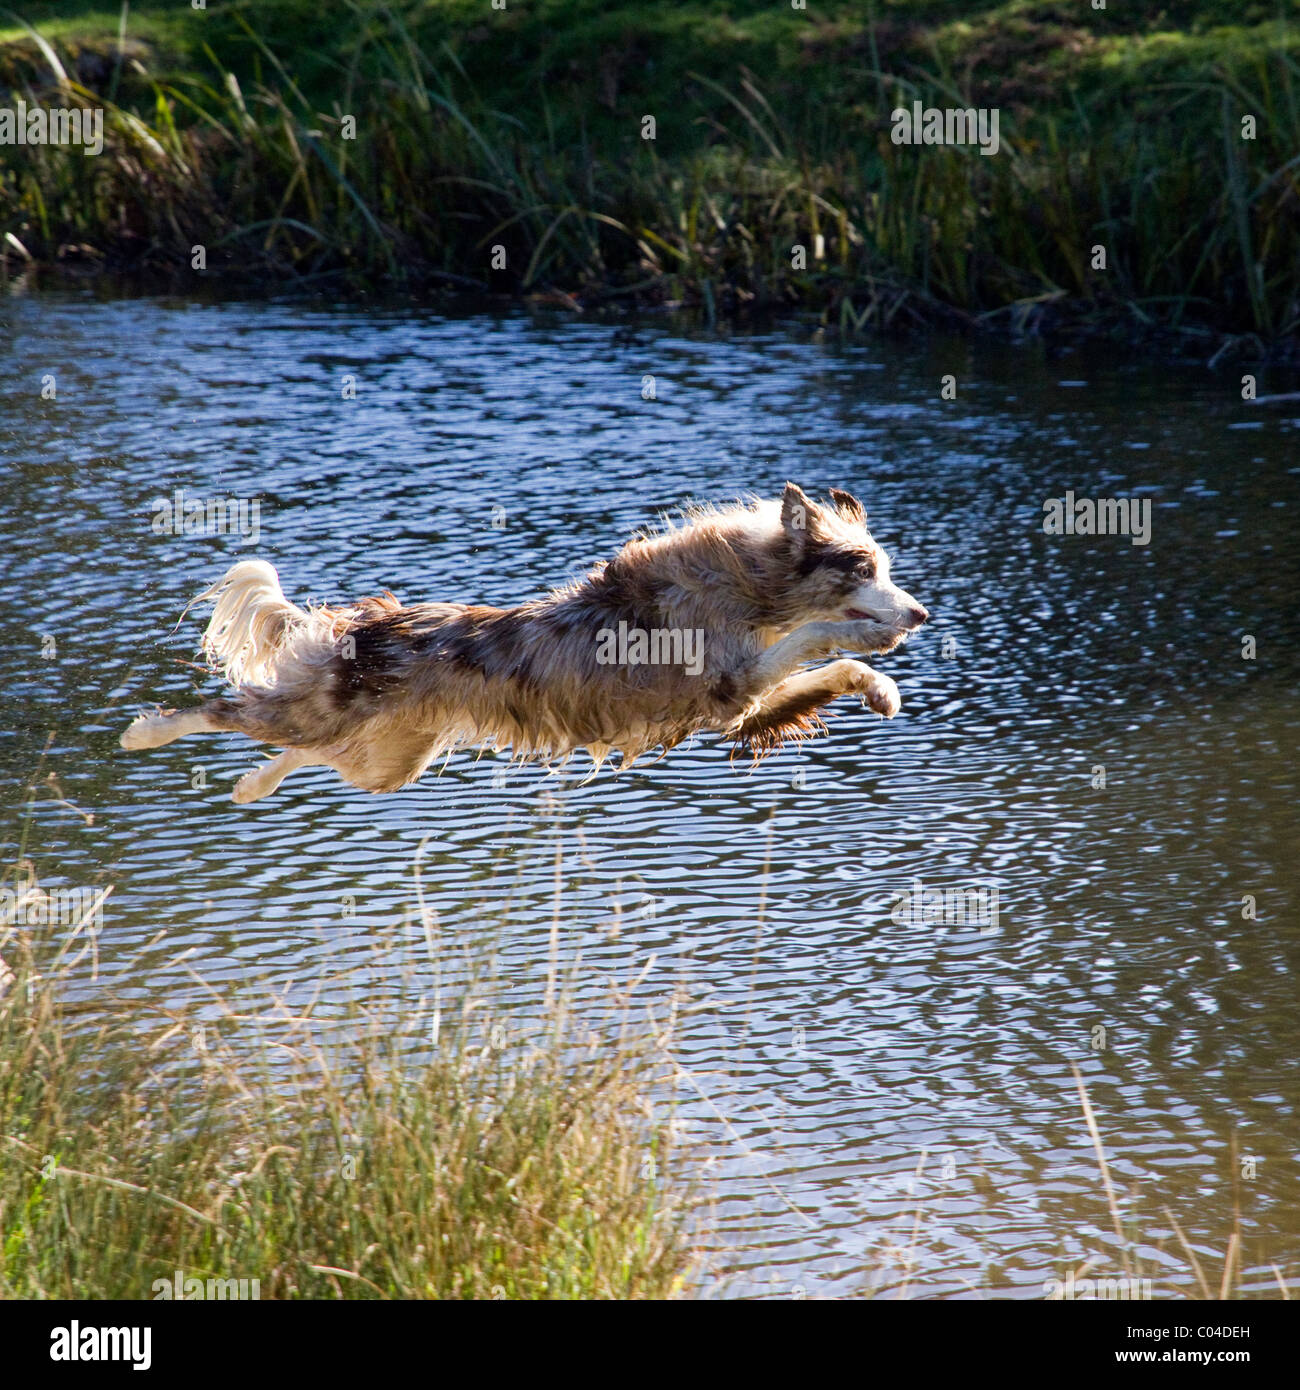 Collie dog leaping / diving headlong into water whilst chasing a thrown ball. Stock Photo